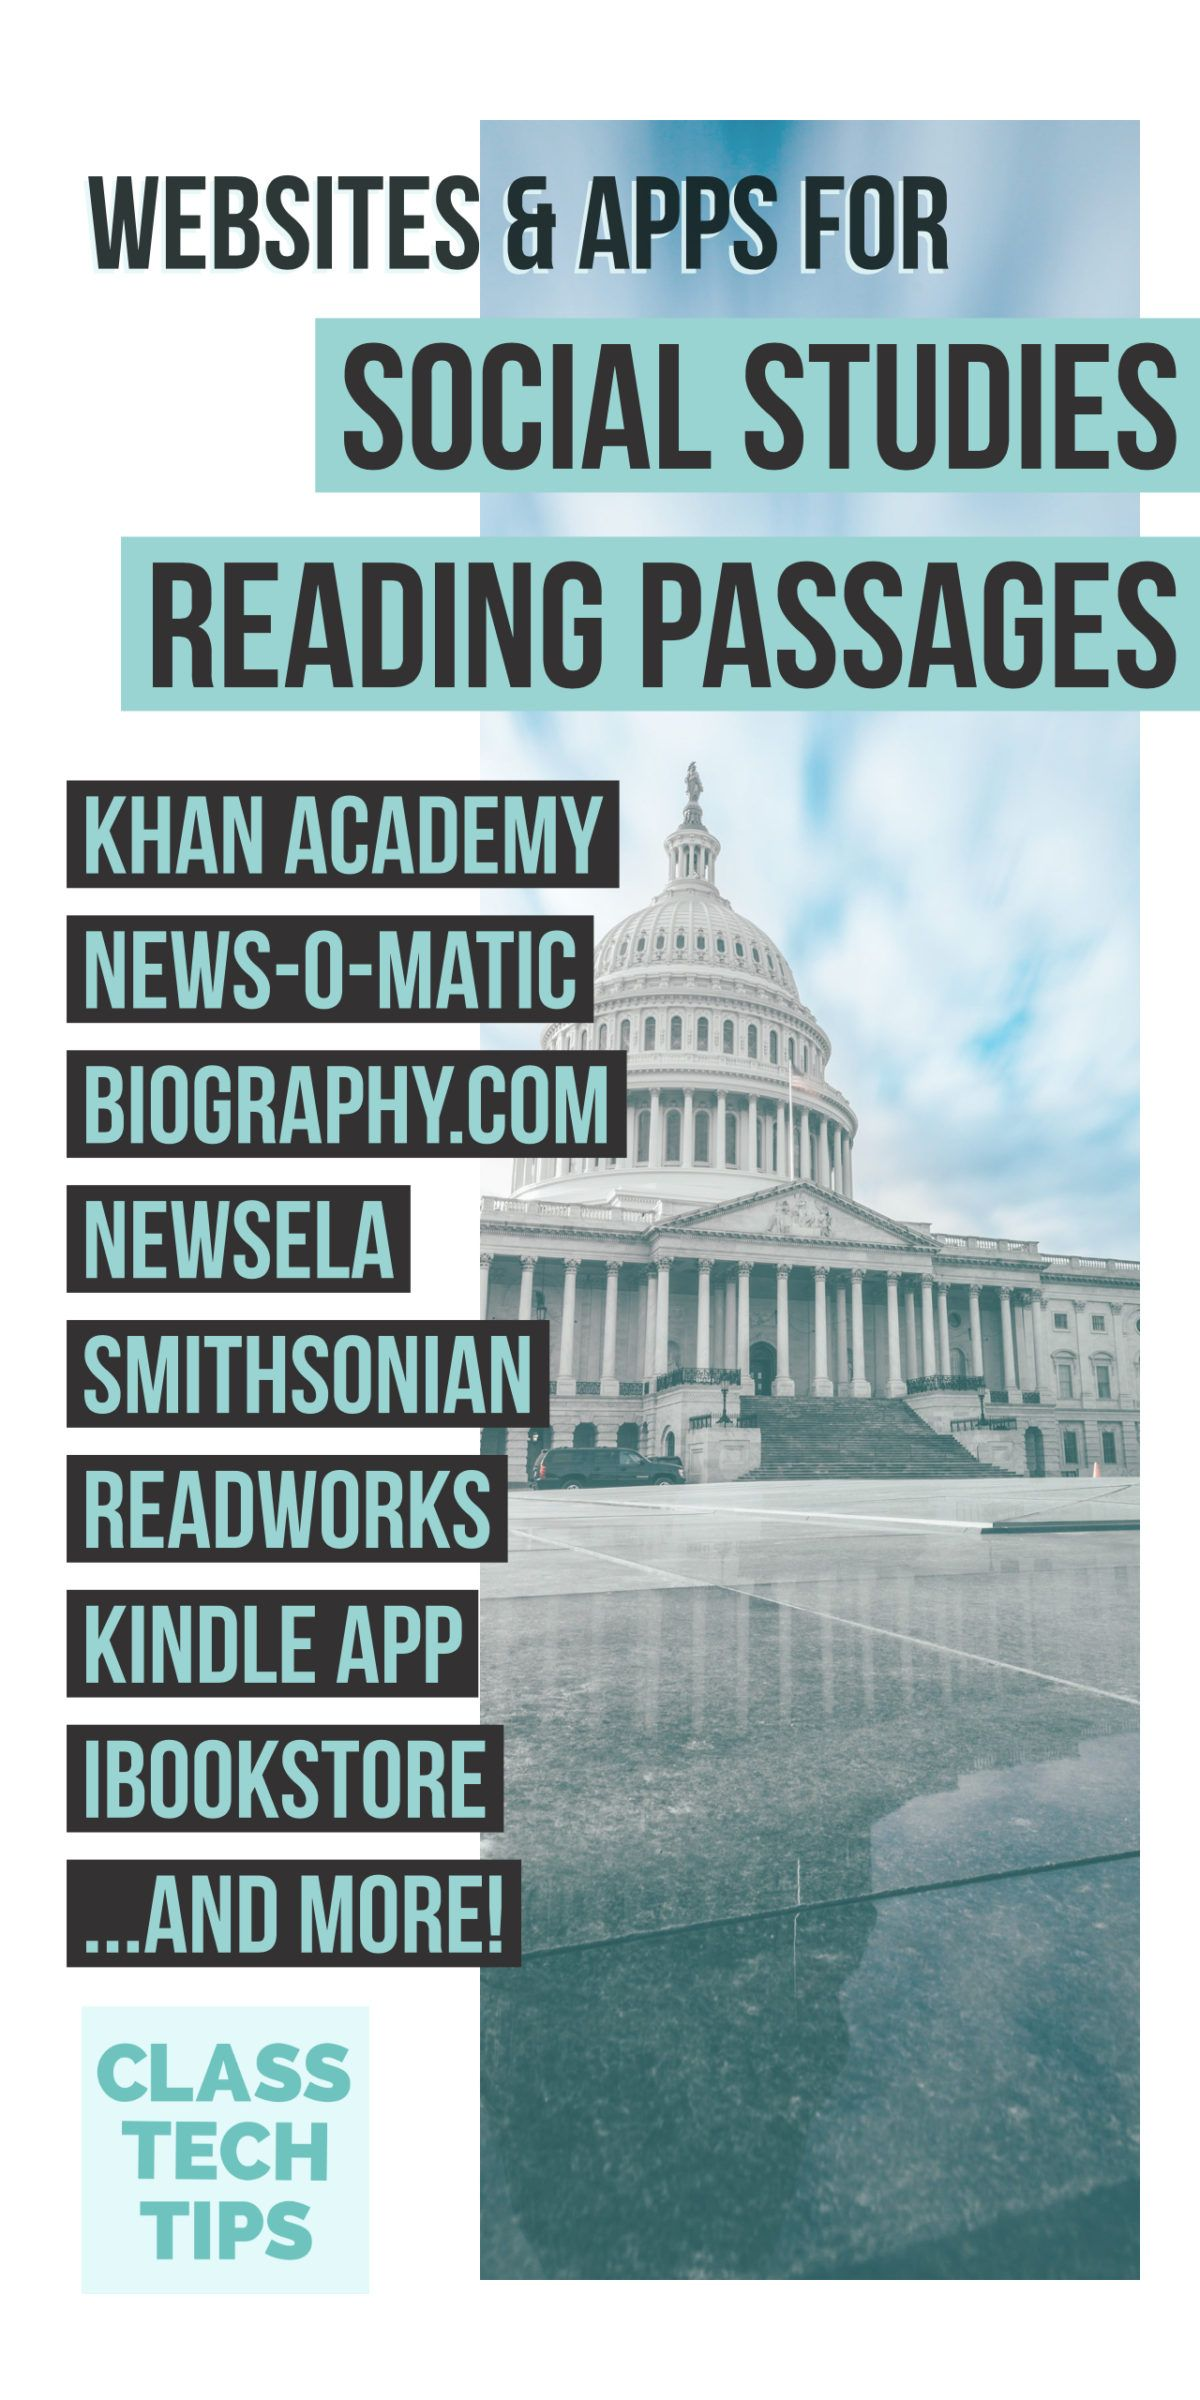 11 websites and apps for social studies reading passages